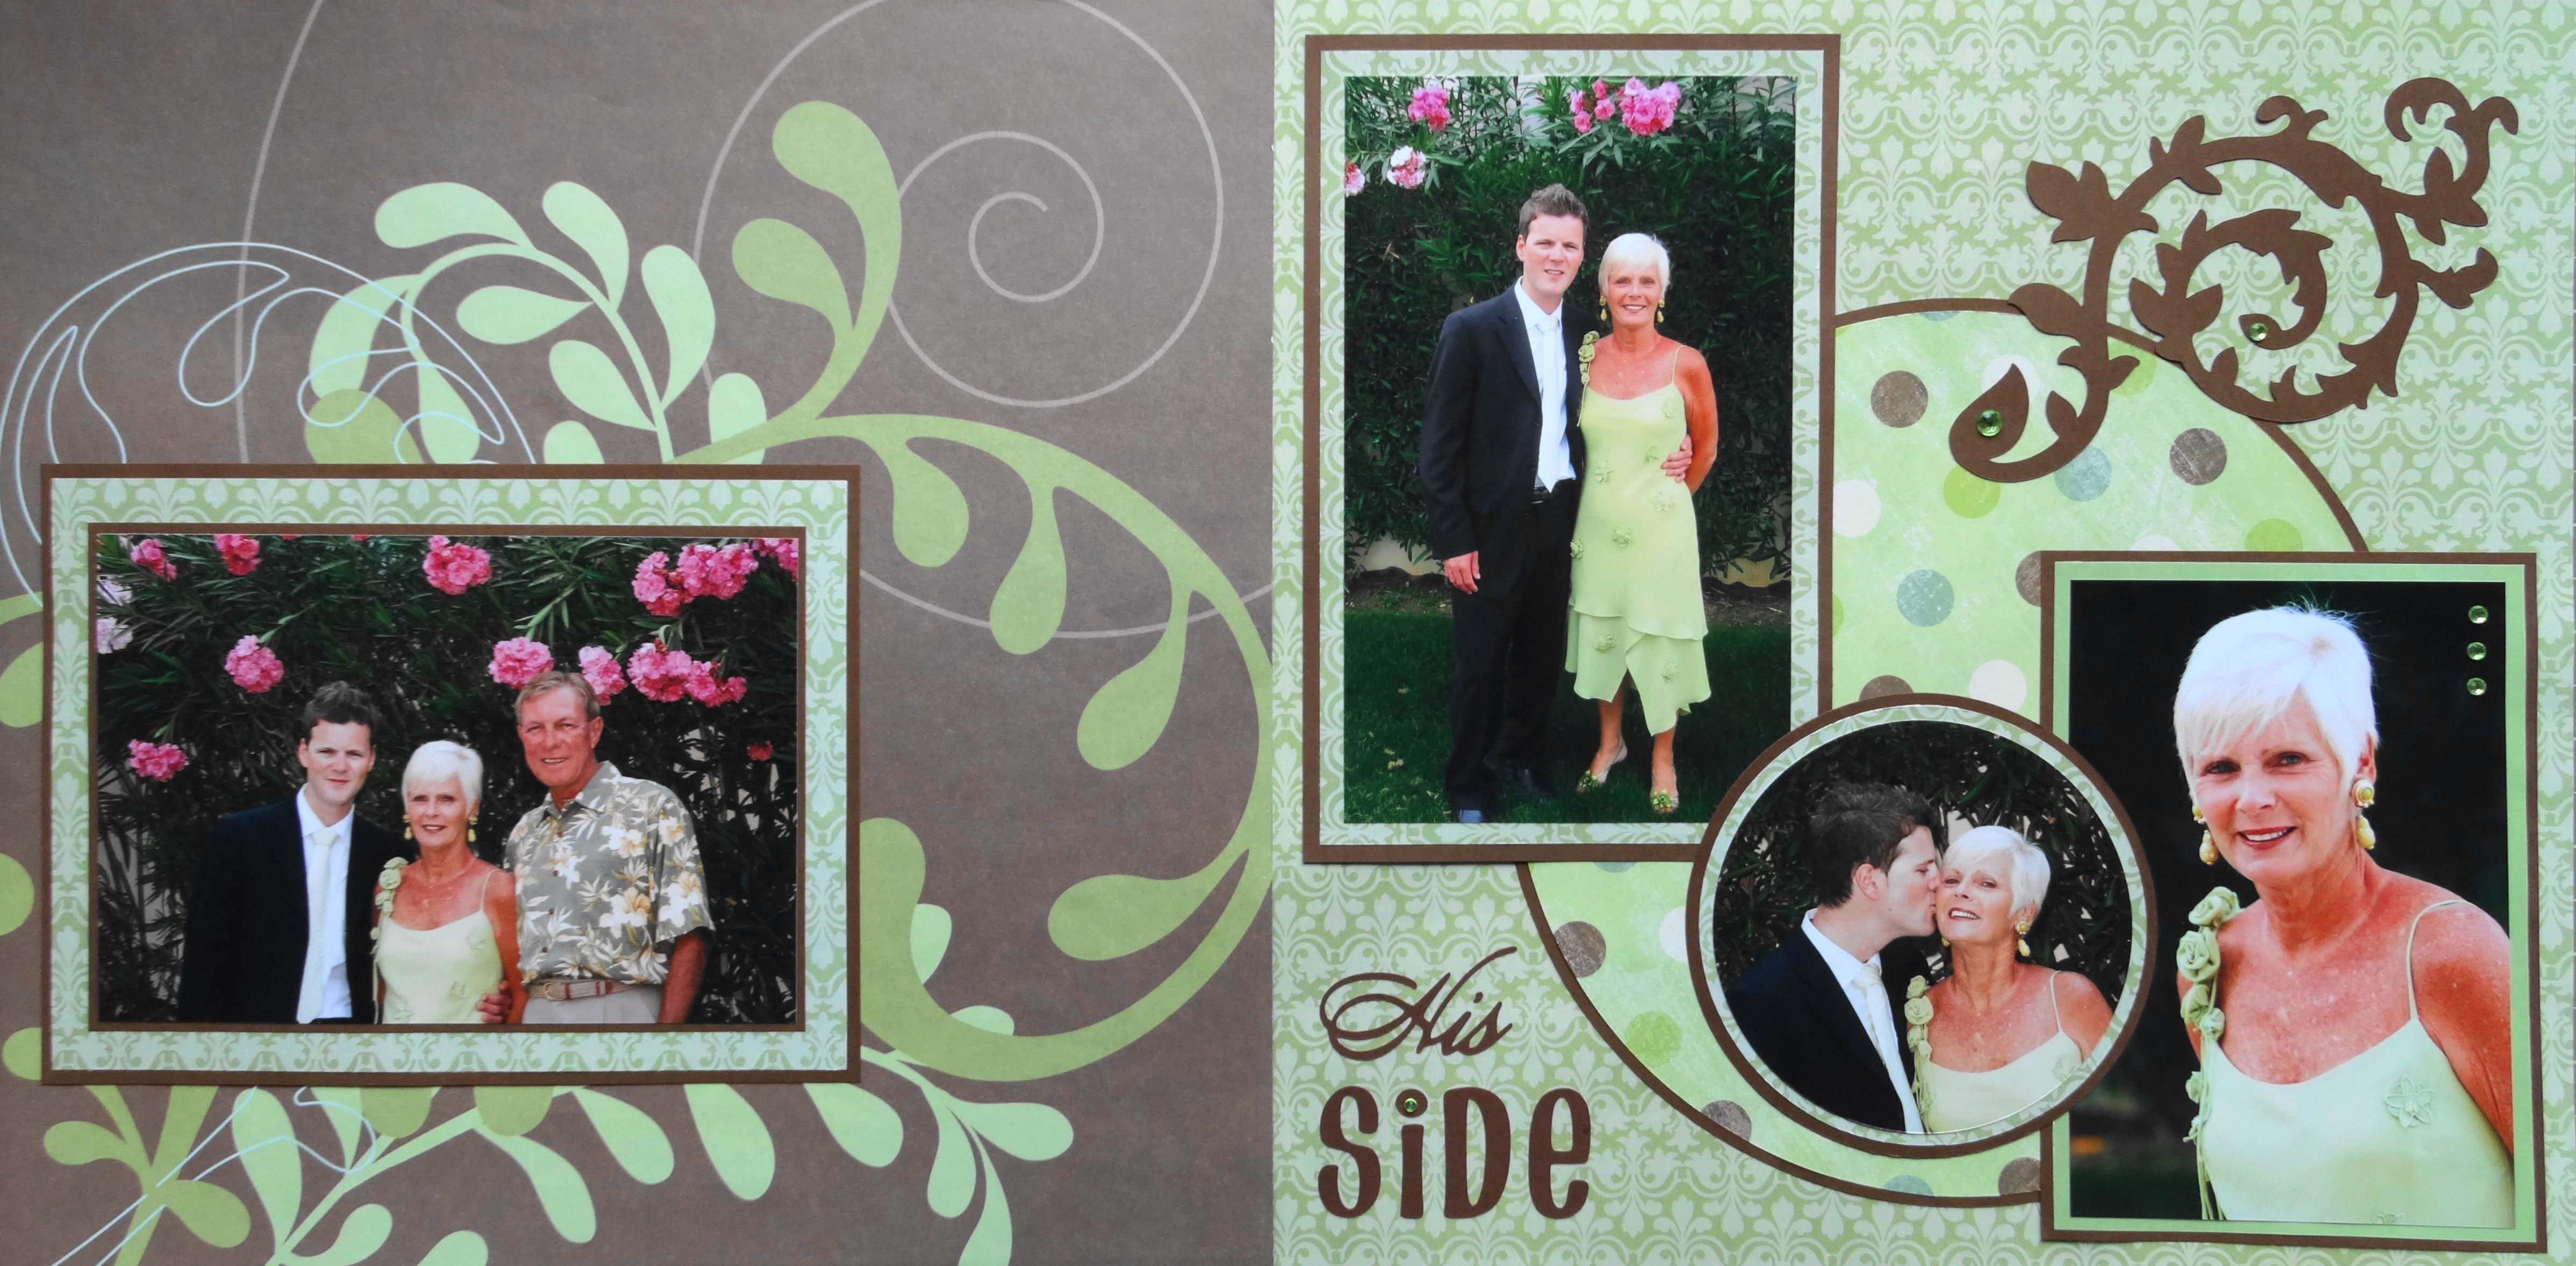 Wedding scrapbook ideas using cricut - Wedding Scrapbook Page Called His Side A 2 Page Wedding Layout Of The Groom S Family With Flourishes From Cricut S Cindy Loo Cartridge